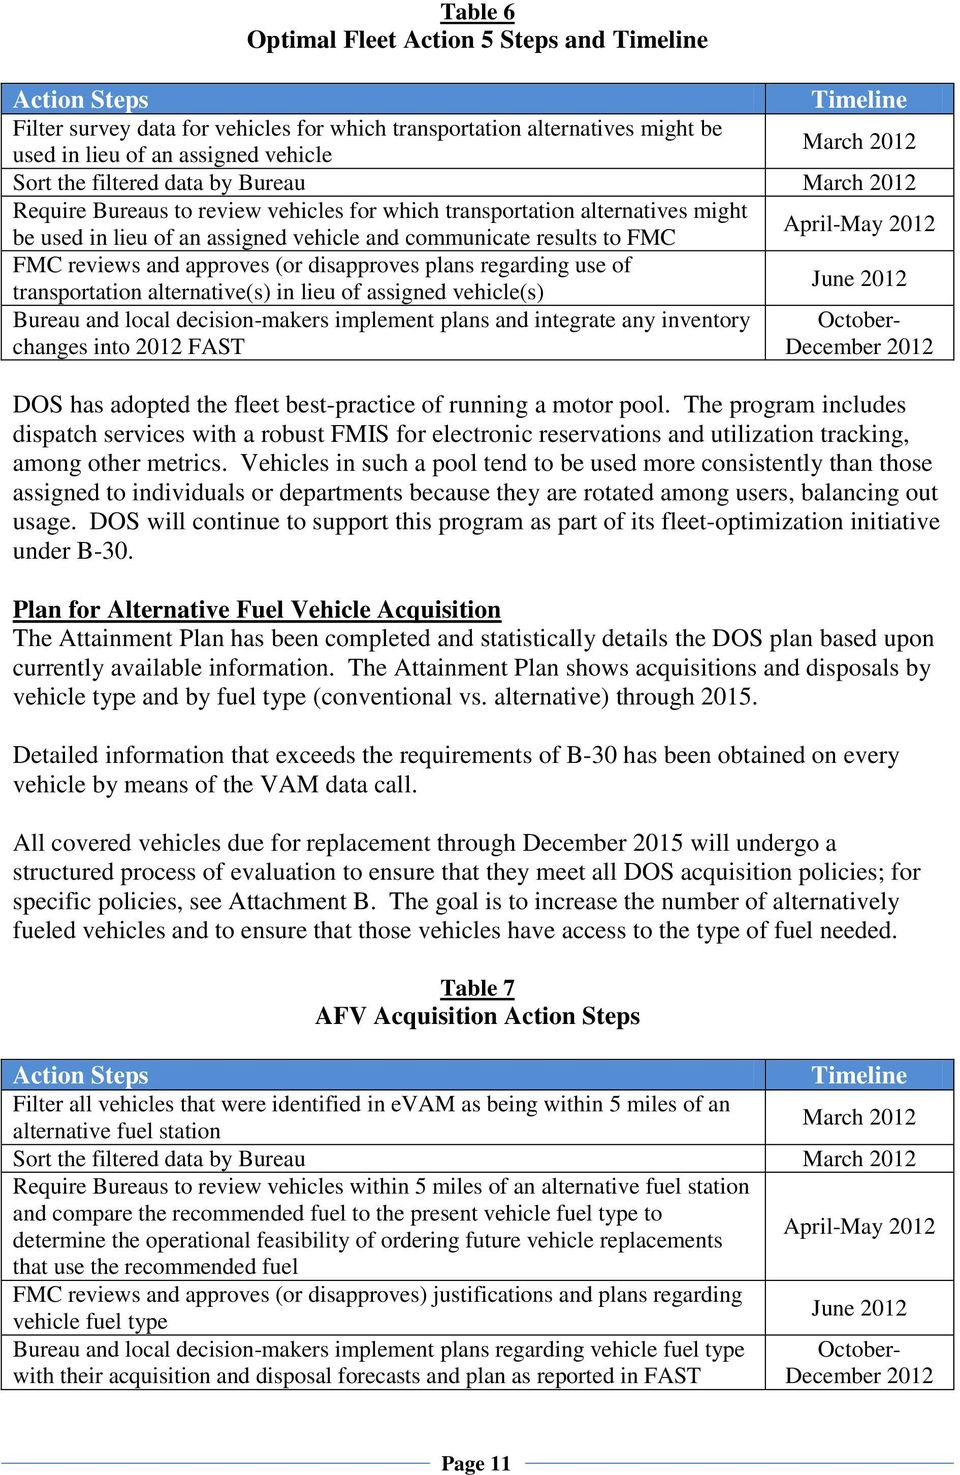 April-May 2012 FMC reviews and approves (or disapproves plans regarding use of transportation alternative(s) in lieu of assigned vehicle(s) June 2012 Bureau and local decision-makers implement plans